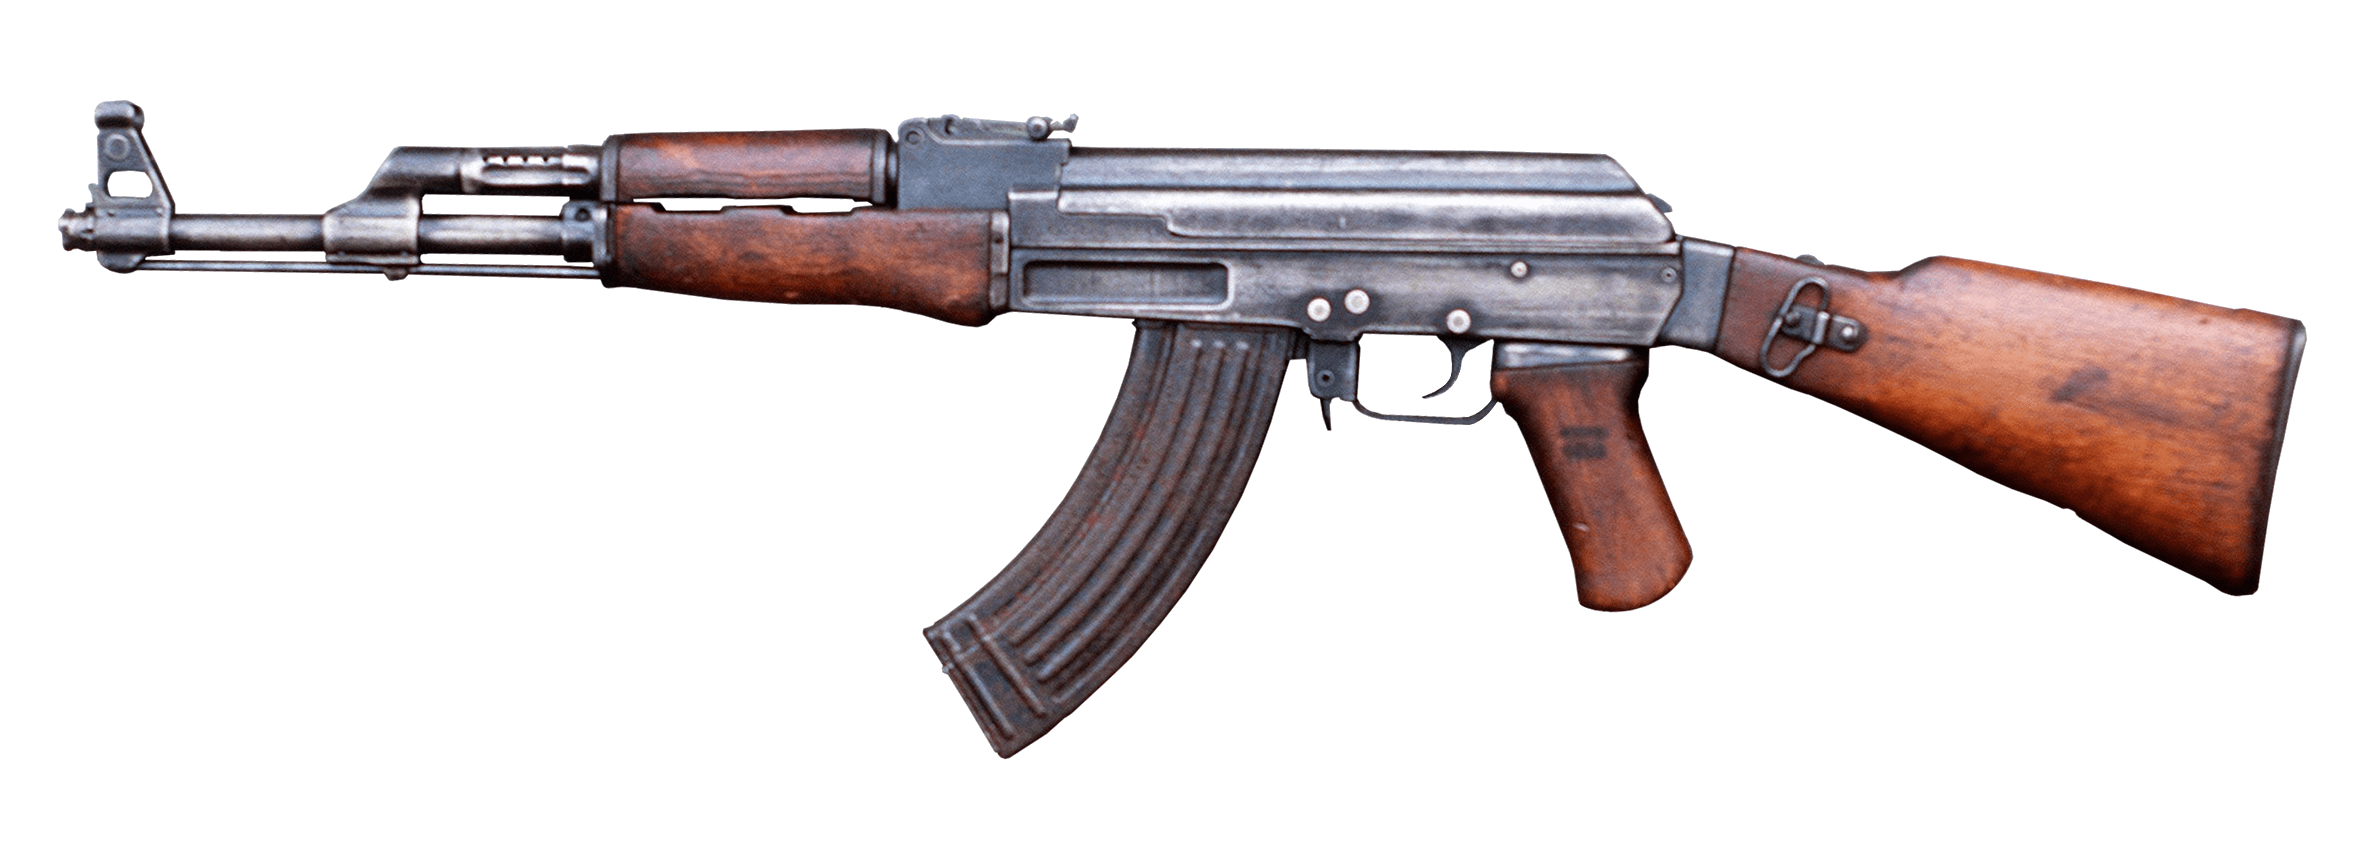 AK 47 transparent PNG - StickPNG